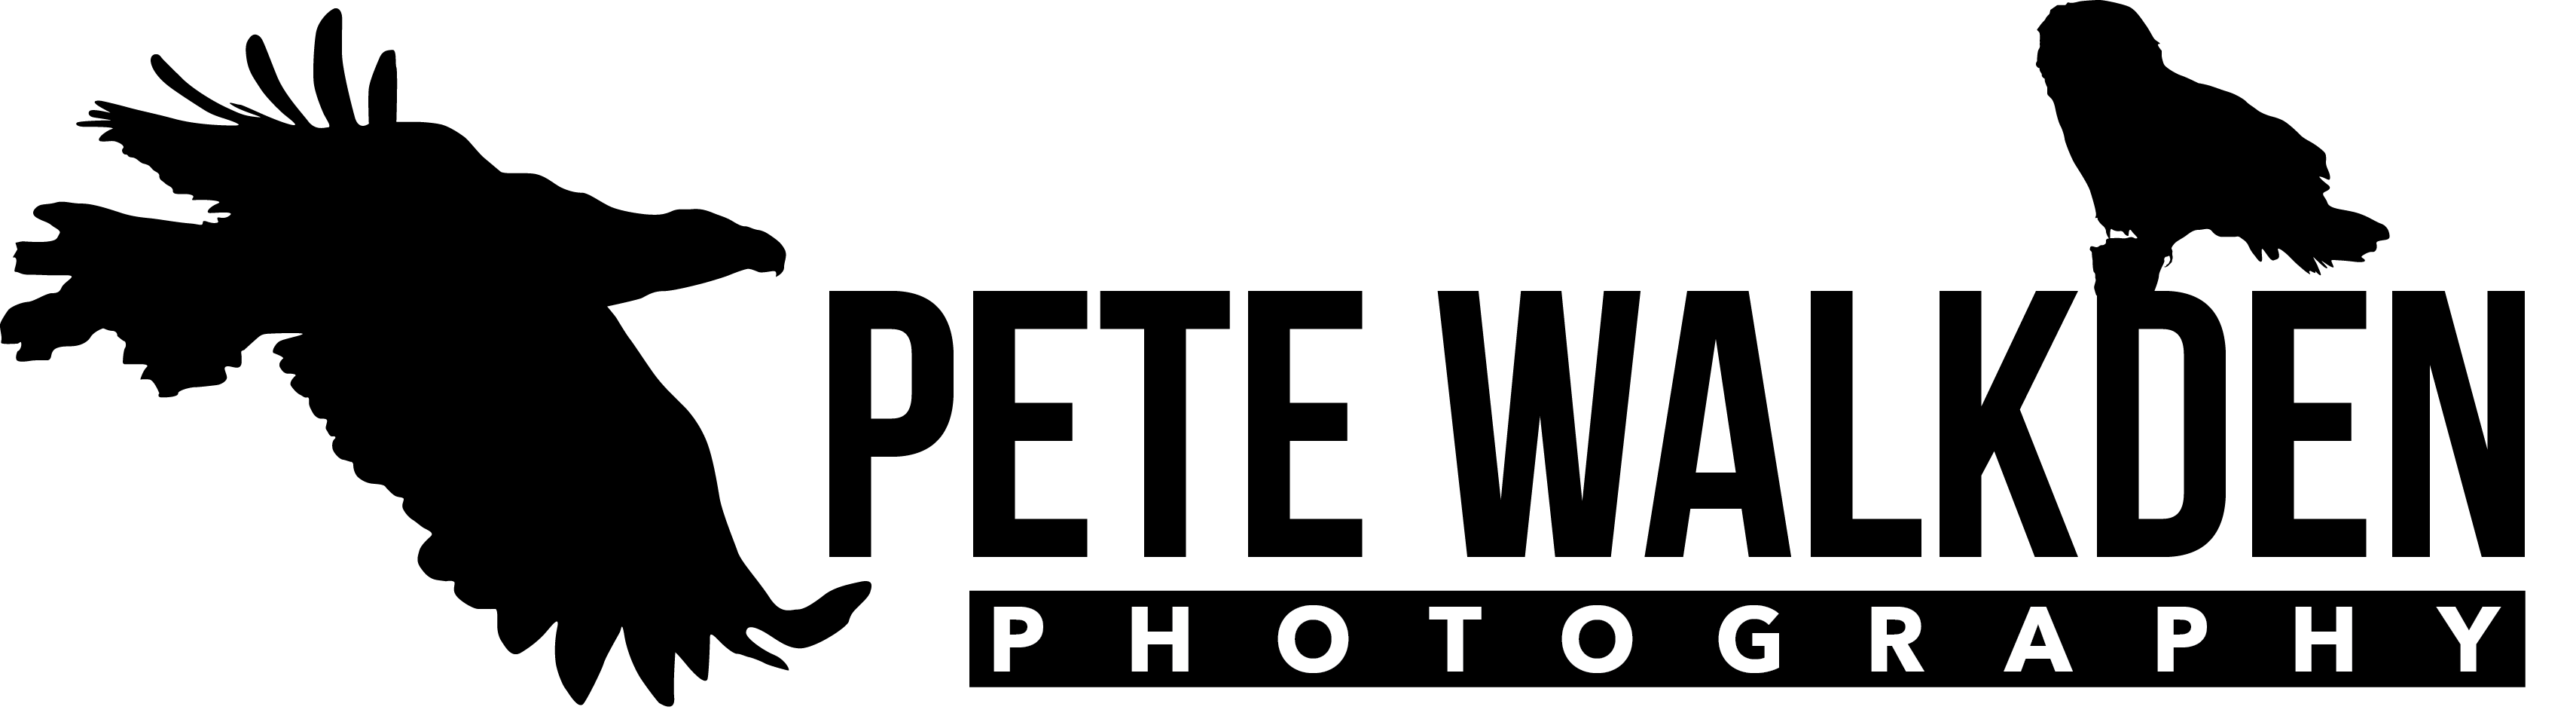 PeteWalkdenLogoBlack